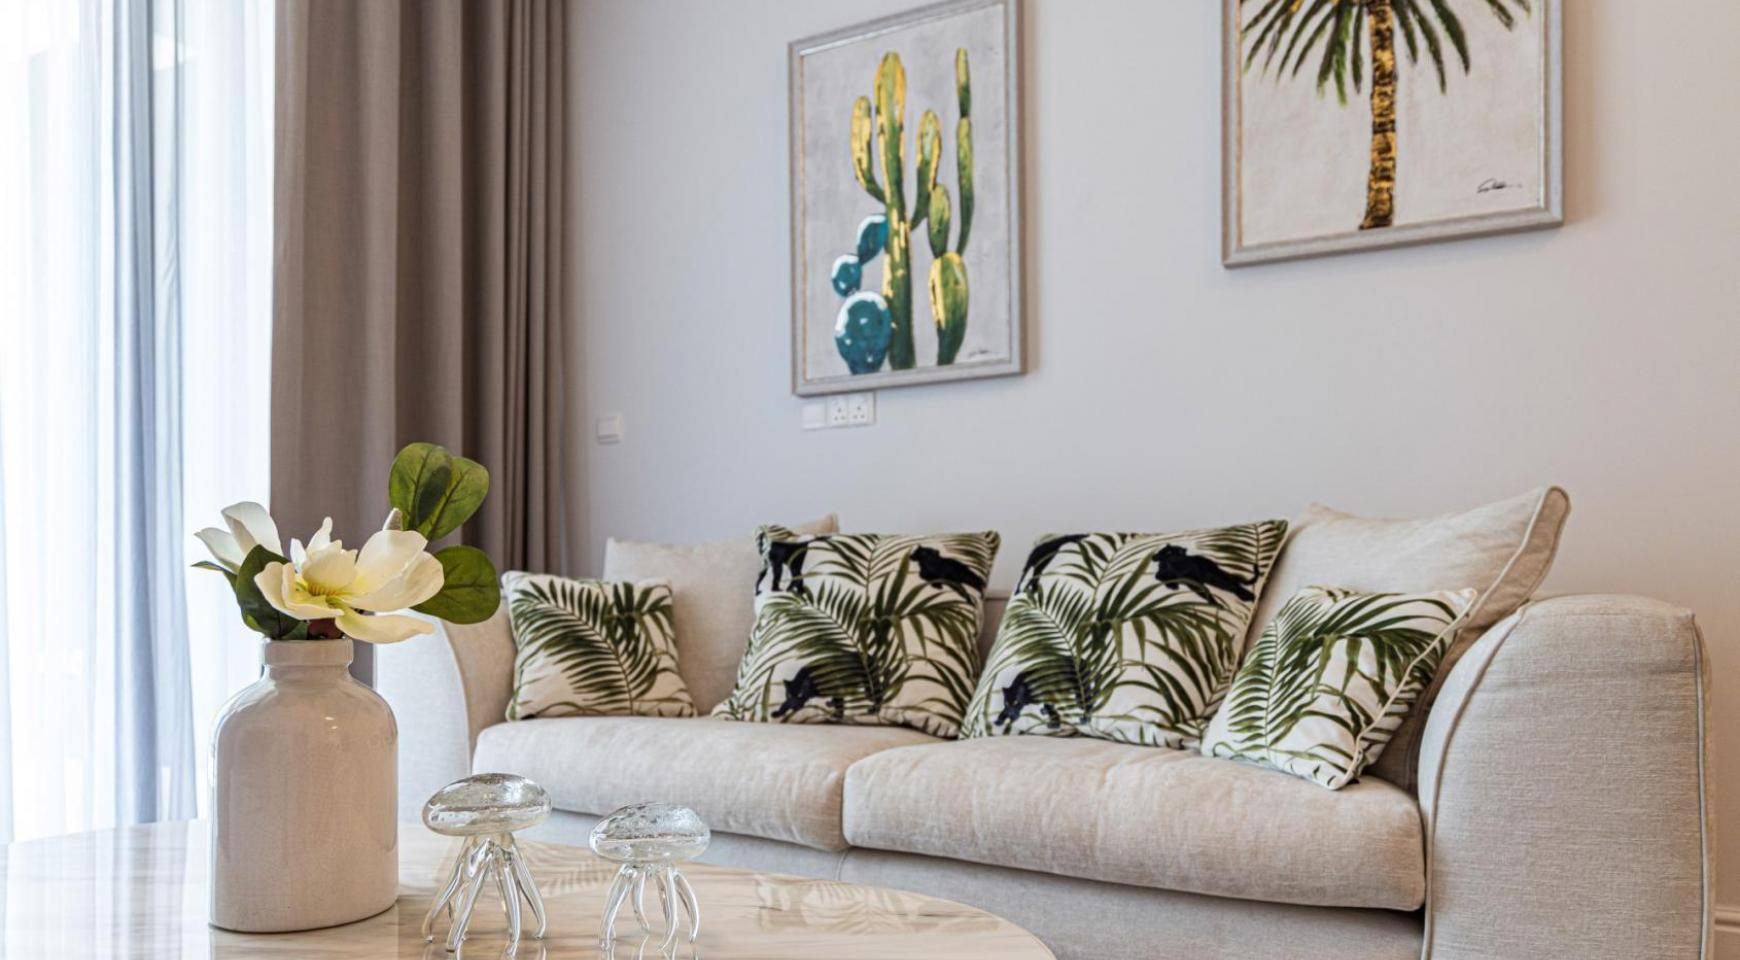 Hortensia Residence, Apt. 201. 2 Bedroom Apartment within a New Complex near the Sea  - 54